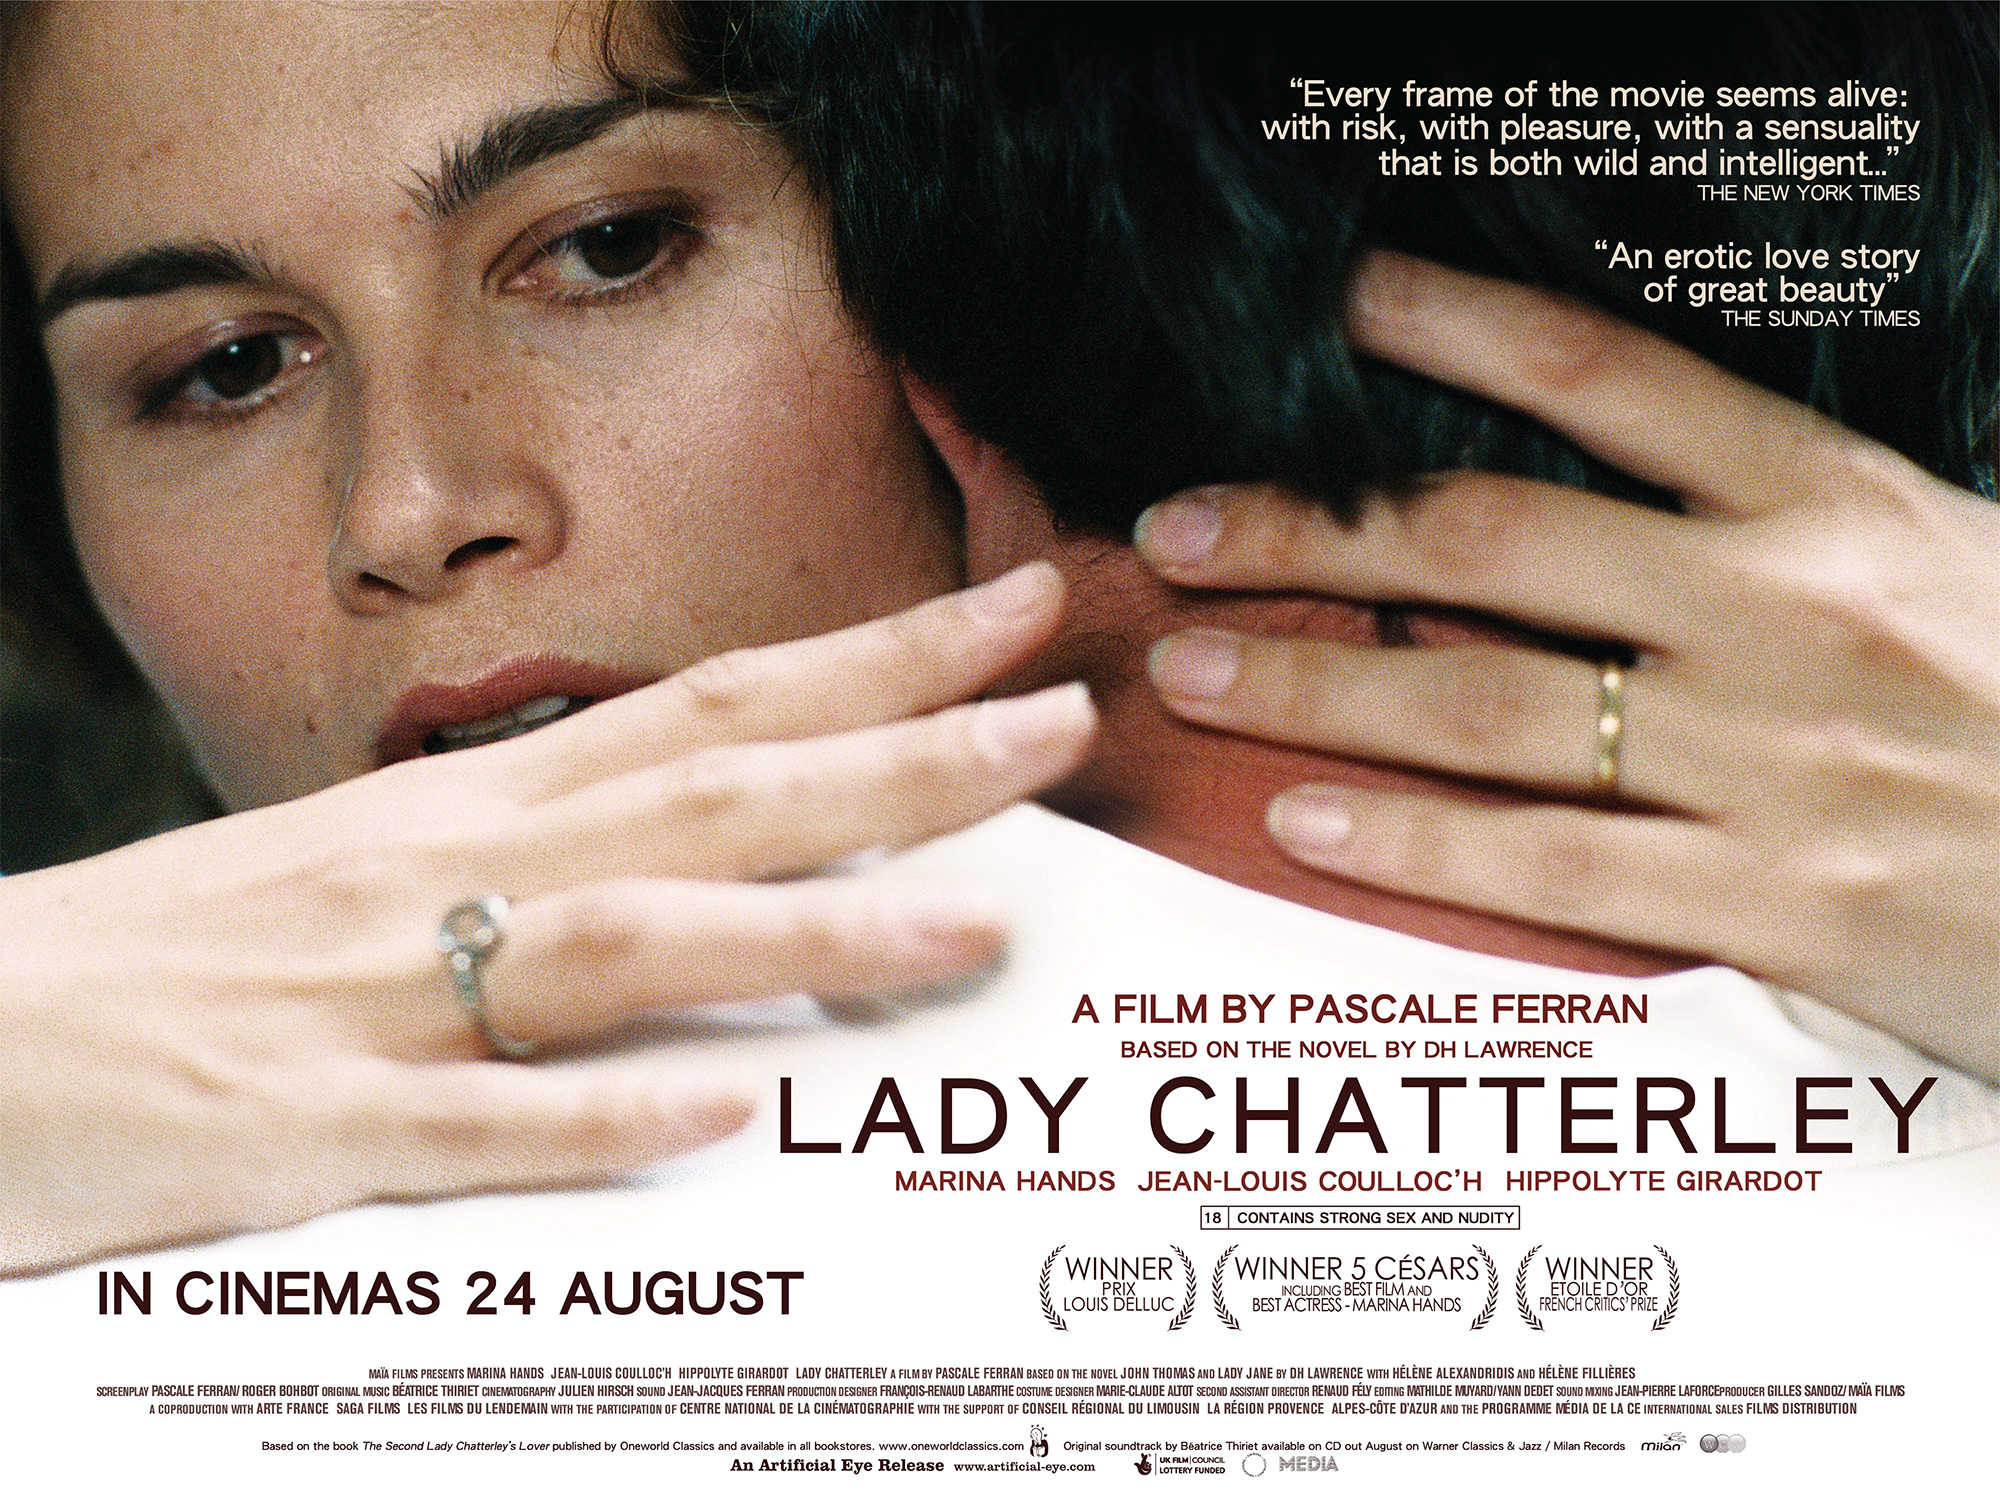 lady chatterleys lover 2006 streaming Classic early 20th-century novel lady chatterley's lover is about the ferran's lady chatterley (which won 2006's top french film honors).